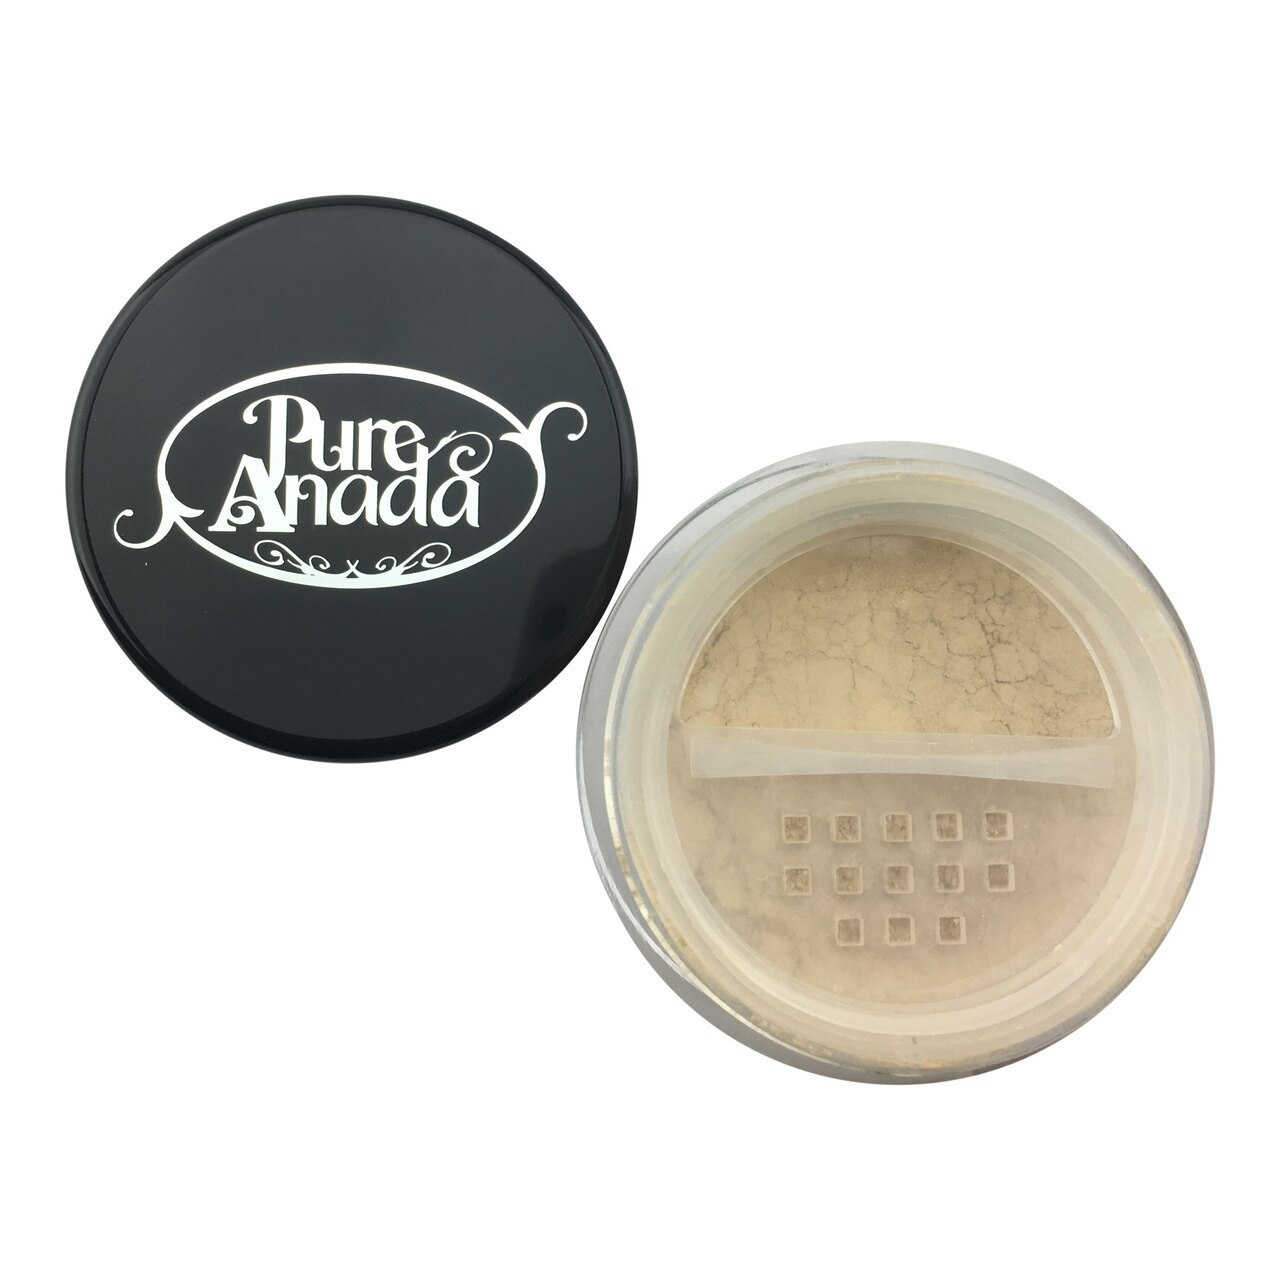 Loose Mineral Foundation - Ivory Chinook: Very Fair (Warm)-2